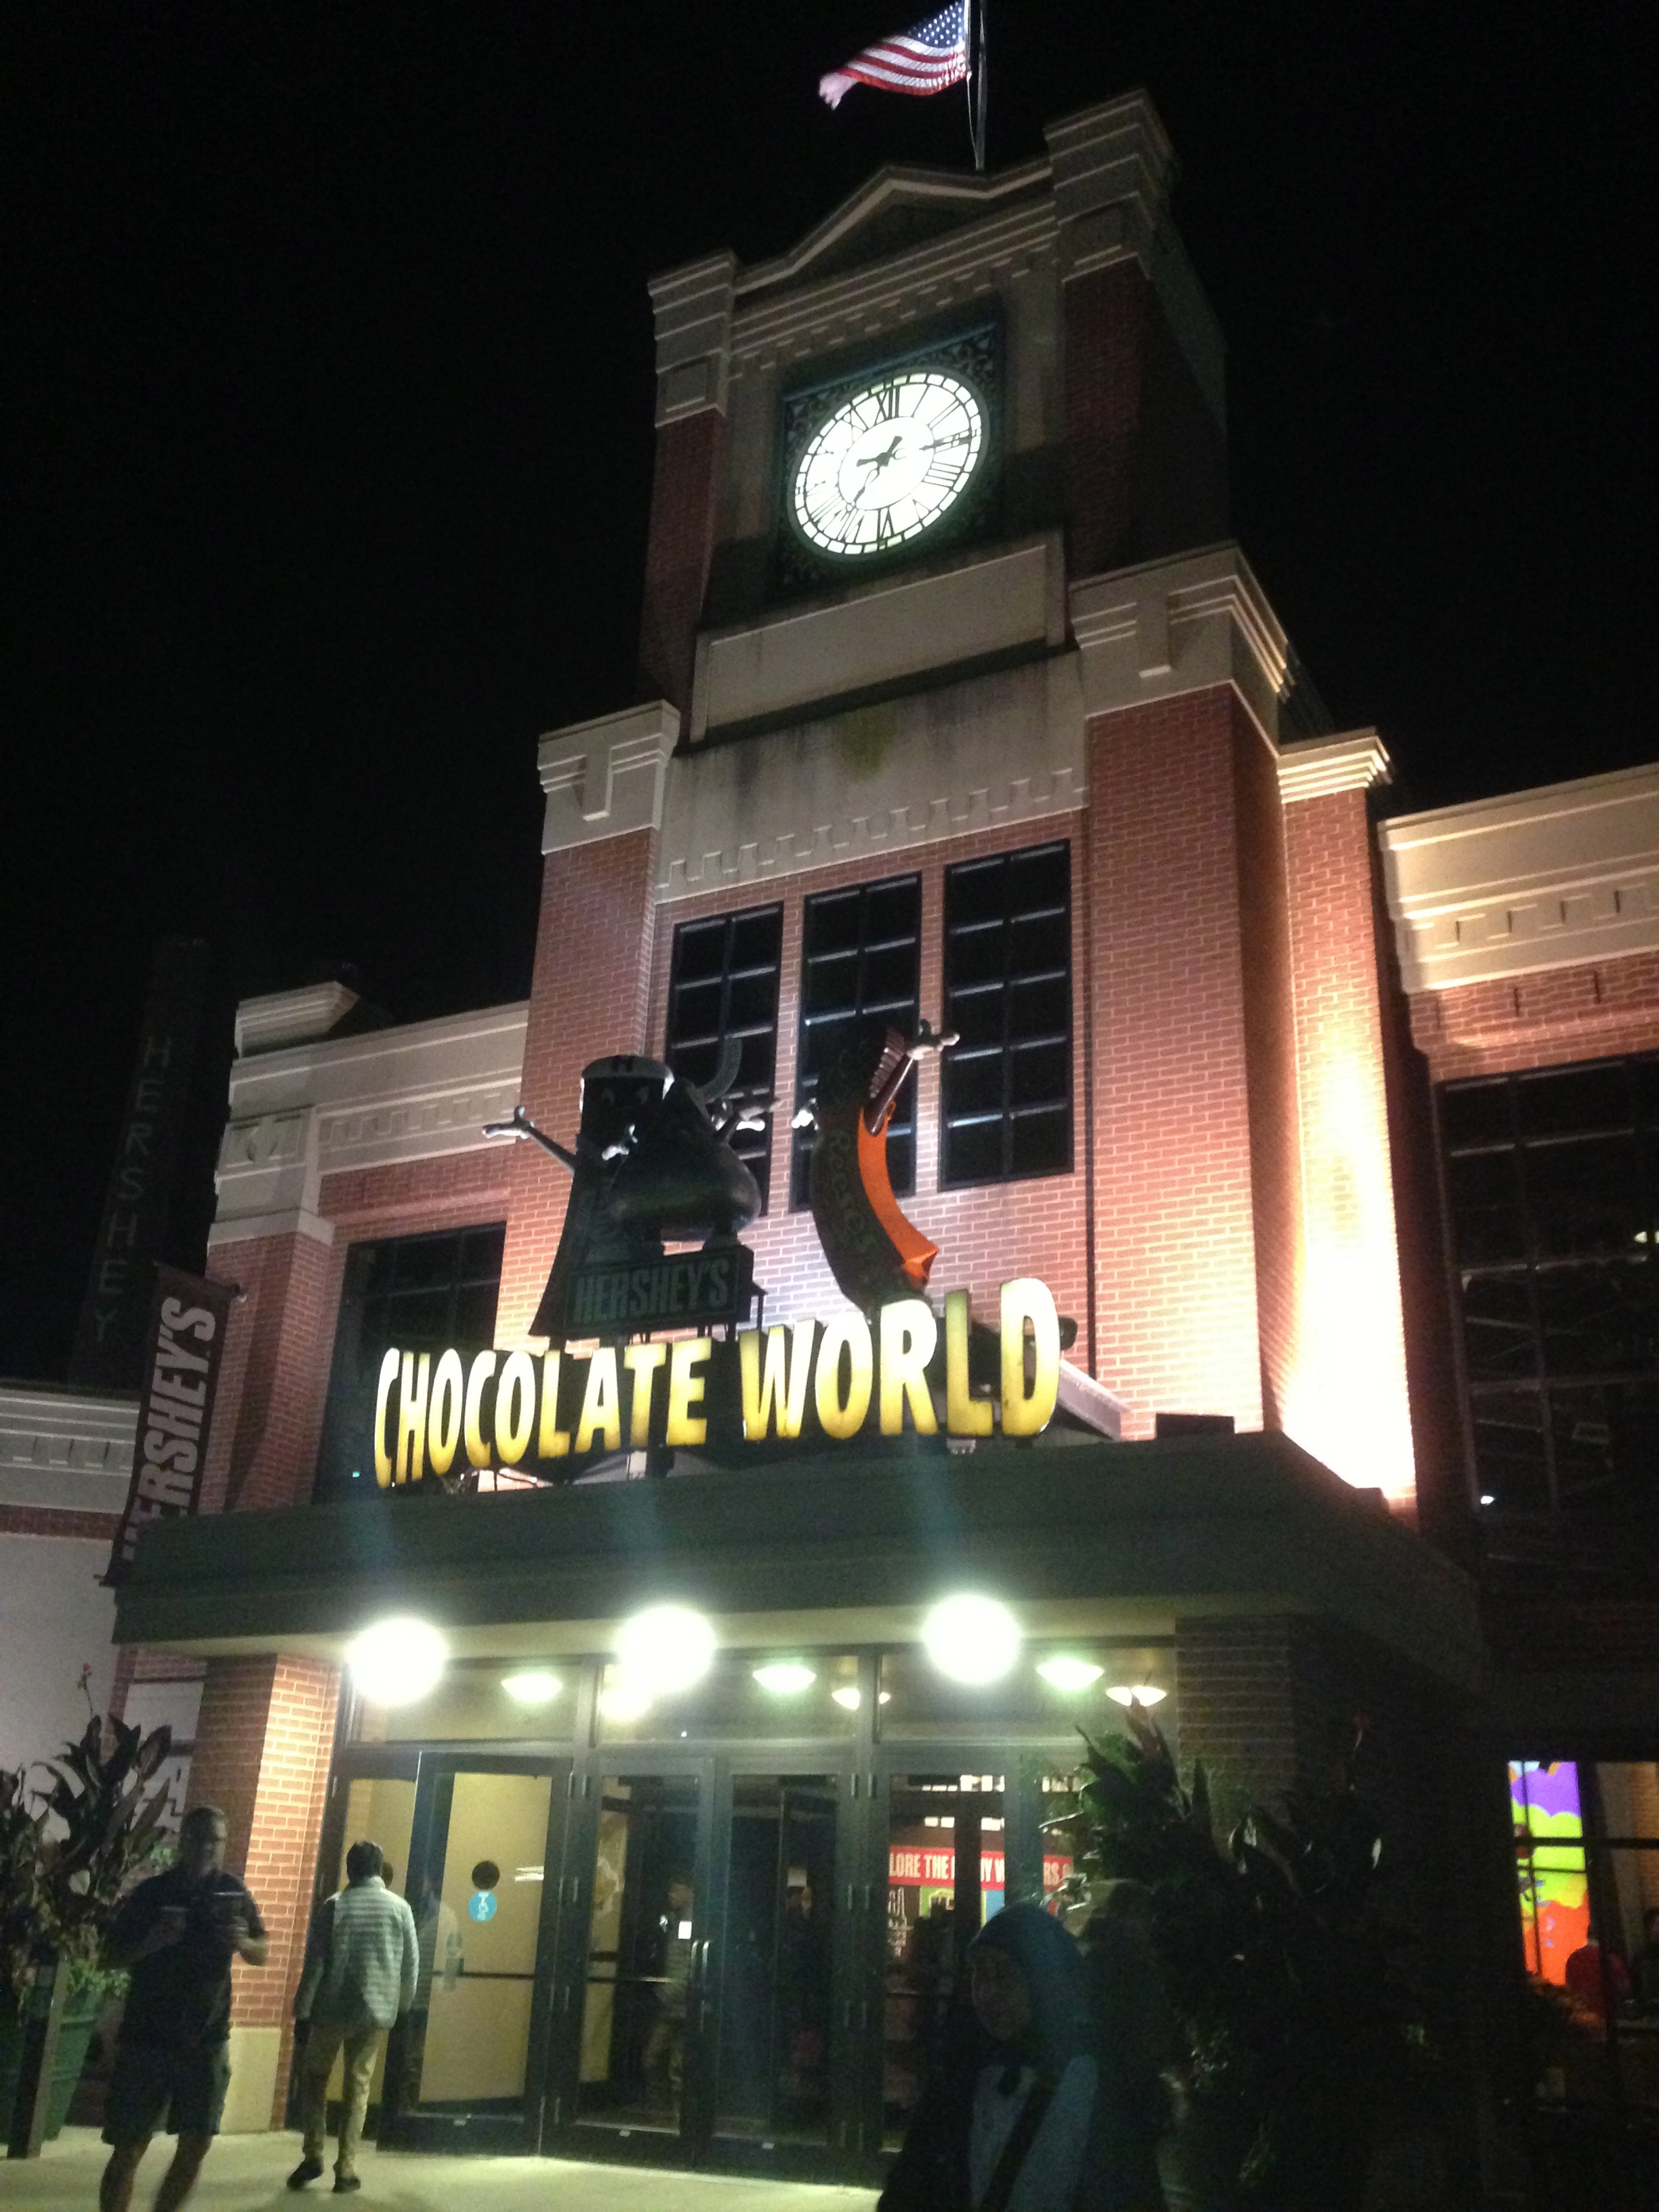 HERSHEY's Chocolate World – Pennsylvania – suadaland